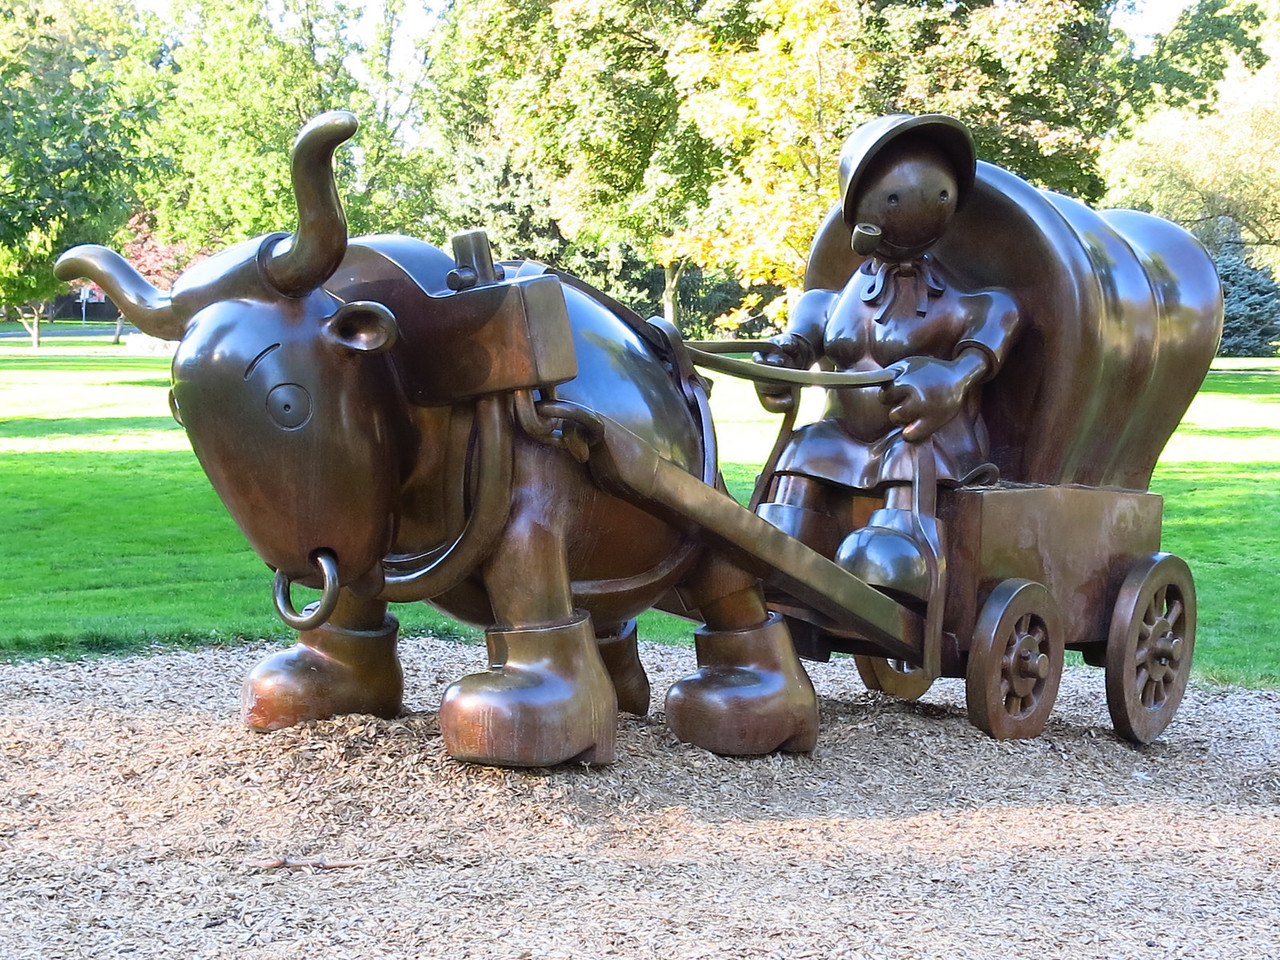 A sculpture in a city park.